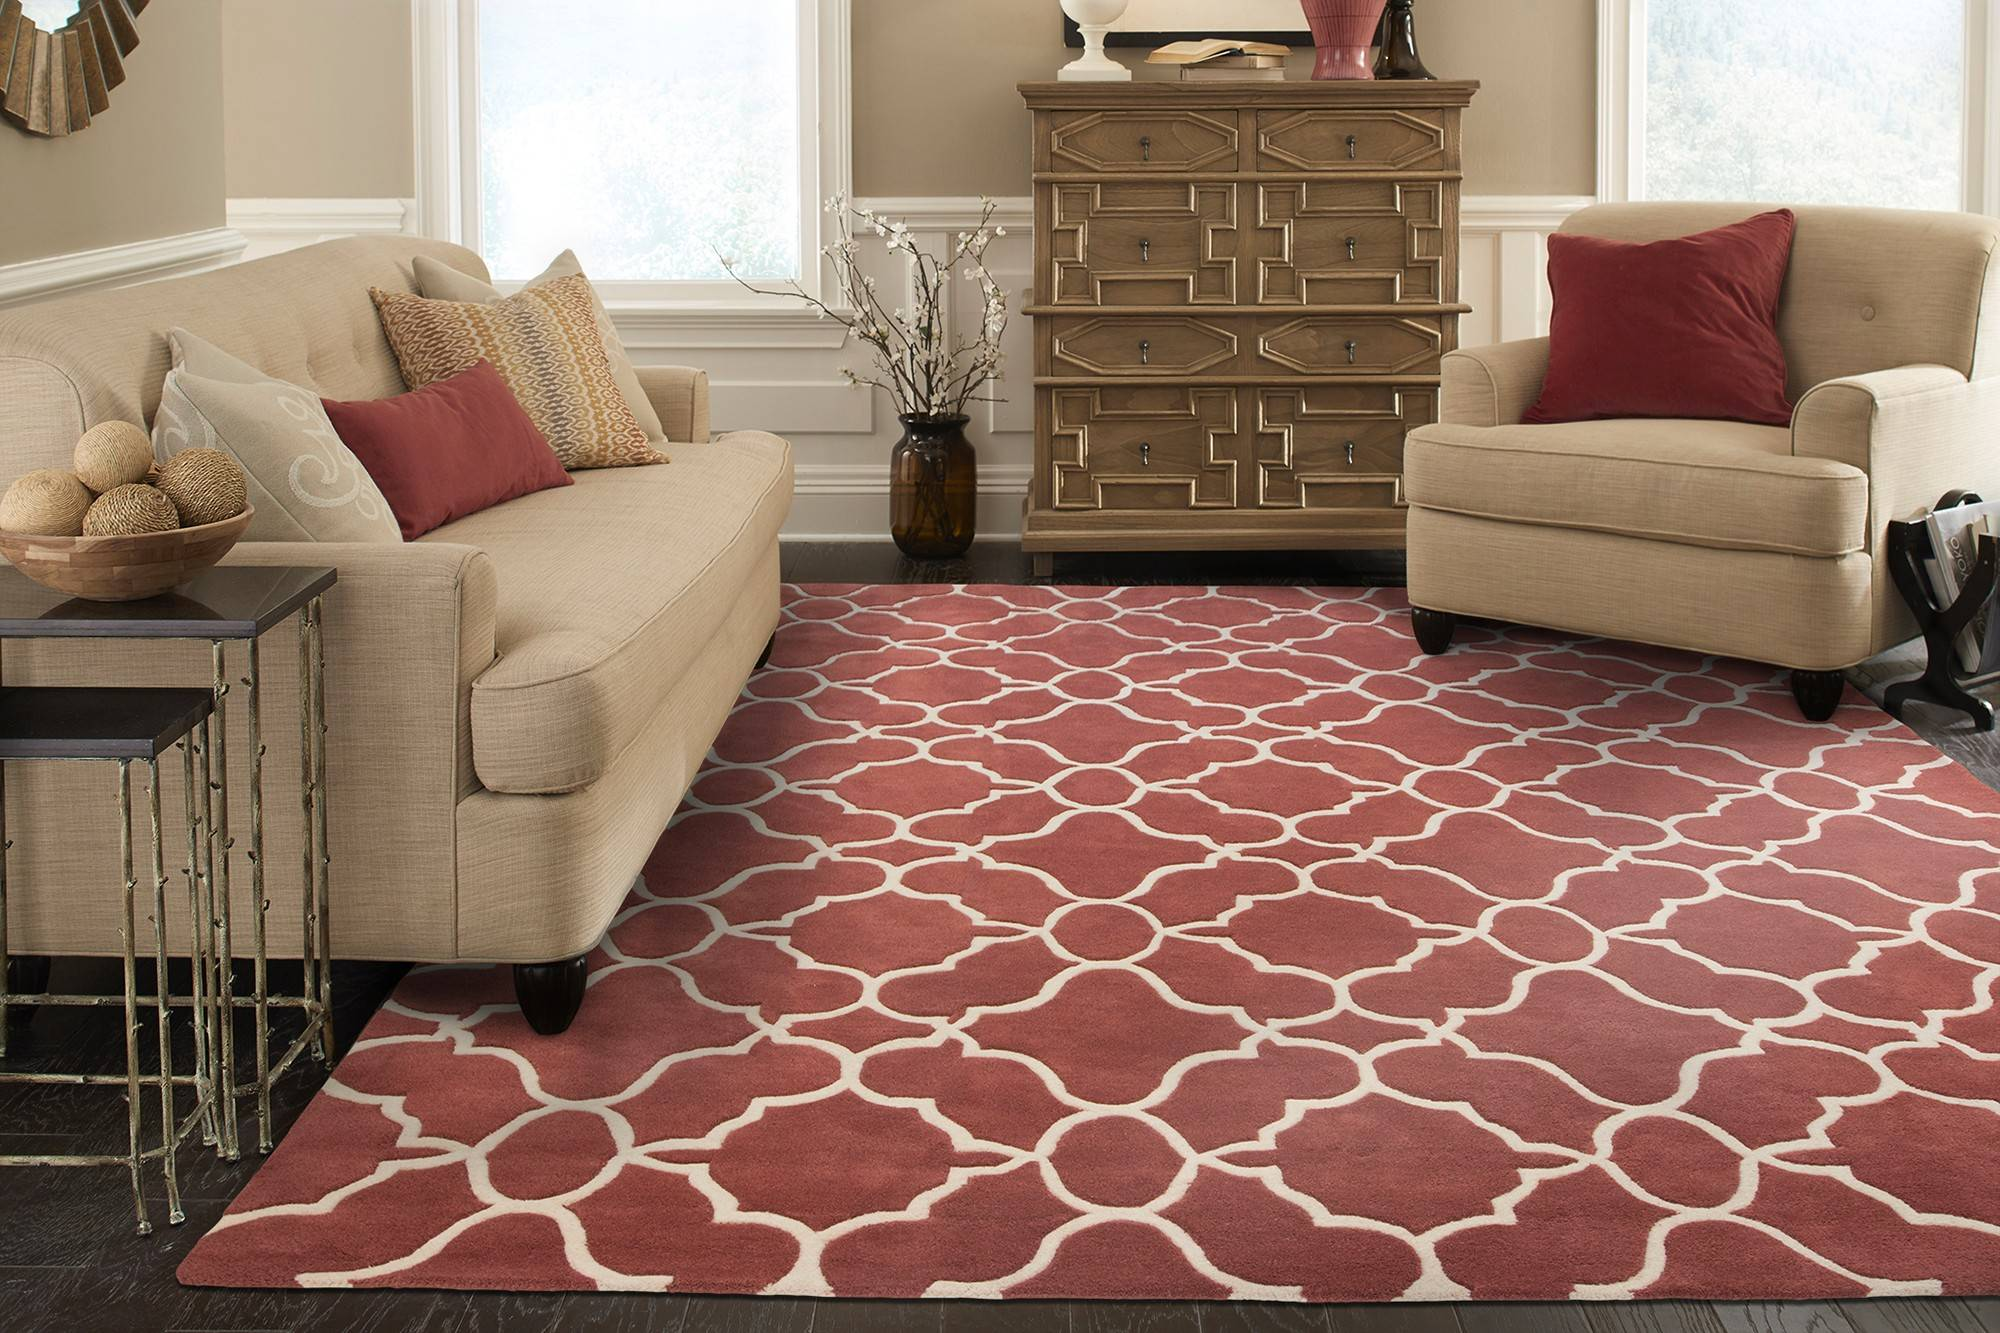 Pantone officials say the Marsala color is already big in clothing, handbags and wearables. Will it be a popular color in decor? The Optic rug fis available from Oriental Weavers.